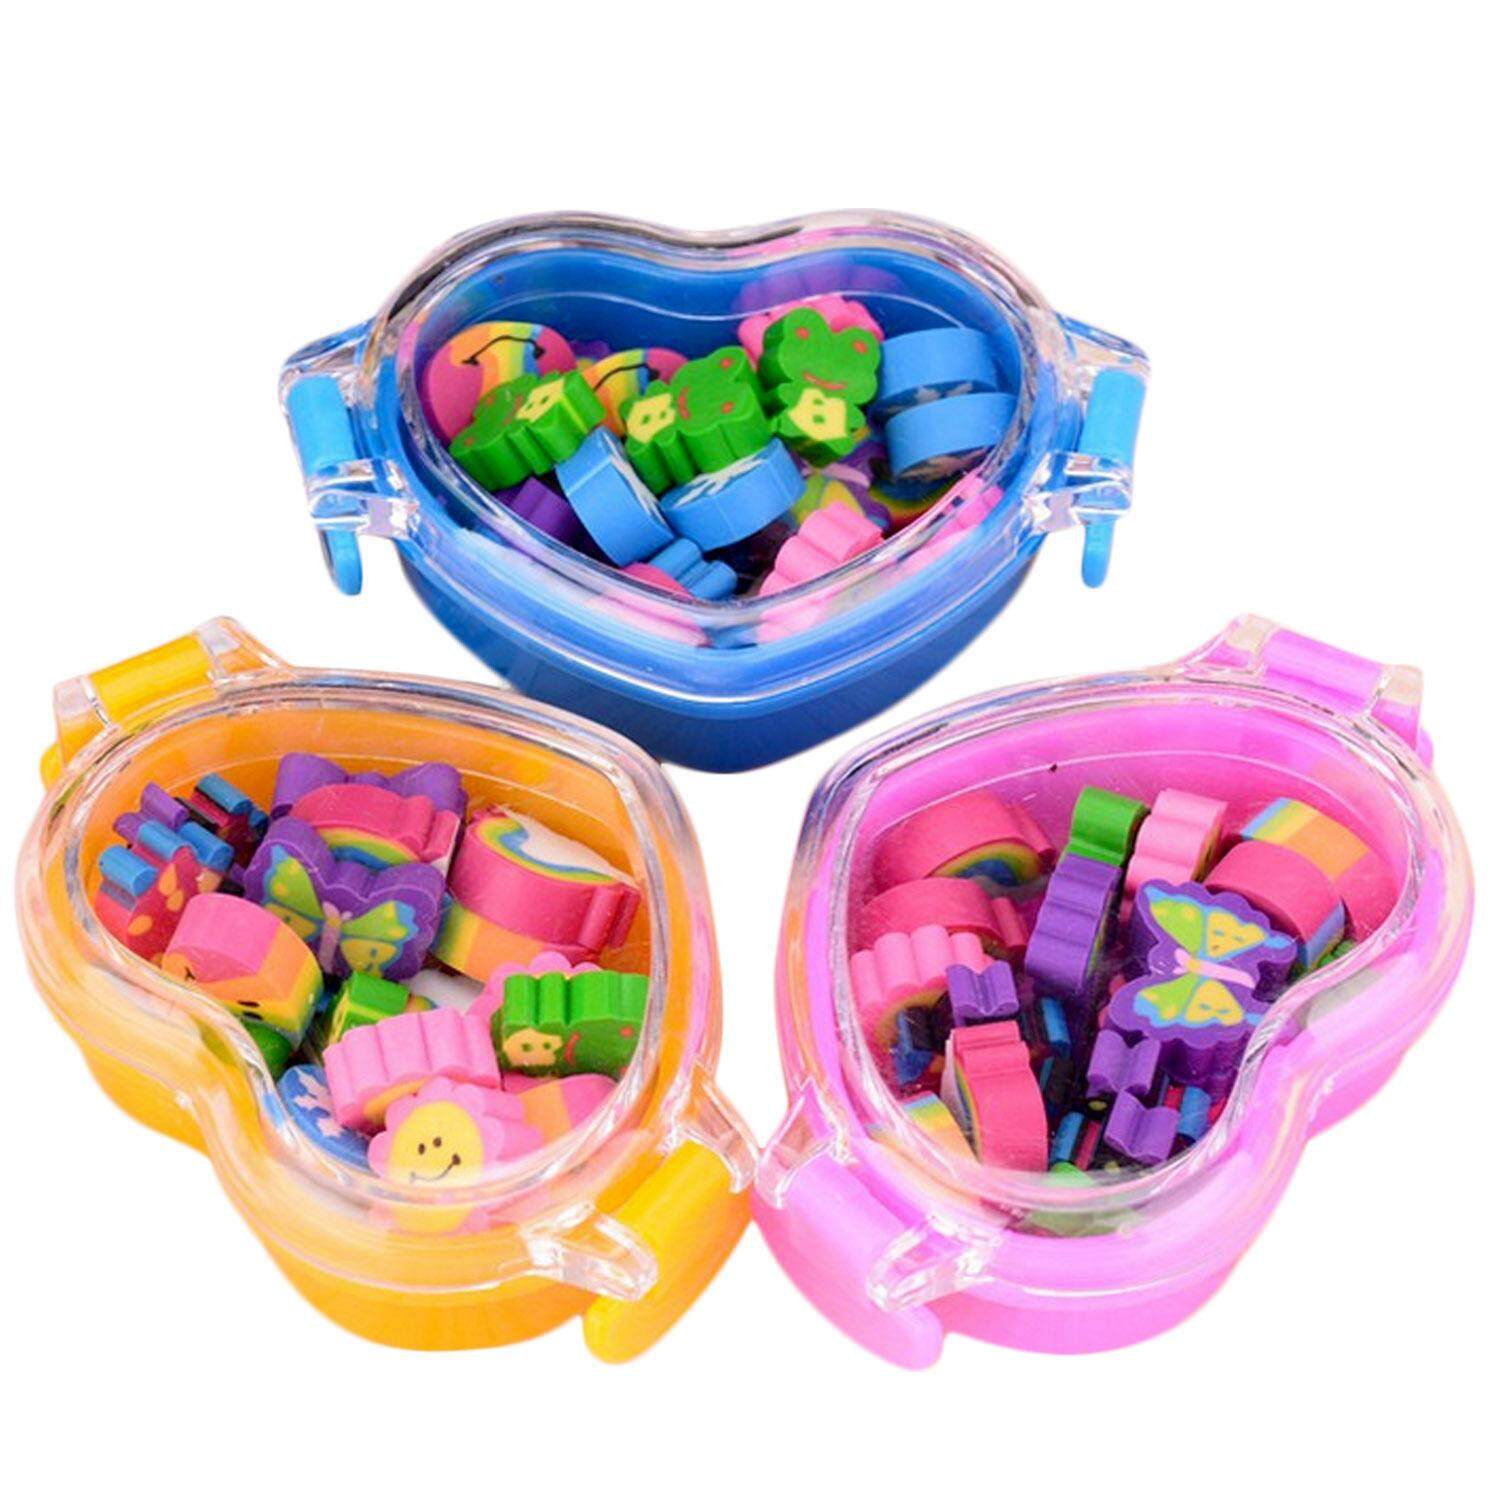 3 Boxes 63 Pcs Mini Cute Rubber Pencil Eraser School Office Stationery Supplies Party Favor Gift For Children Students Sqaure Shaped Box - Intl By Stoneky.